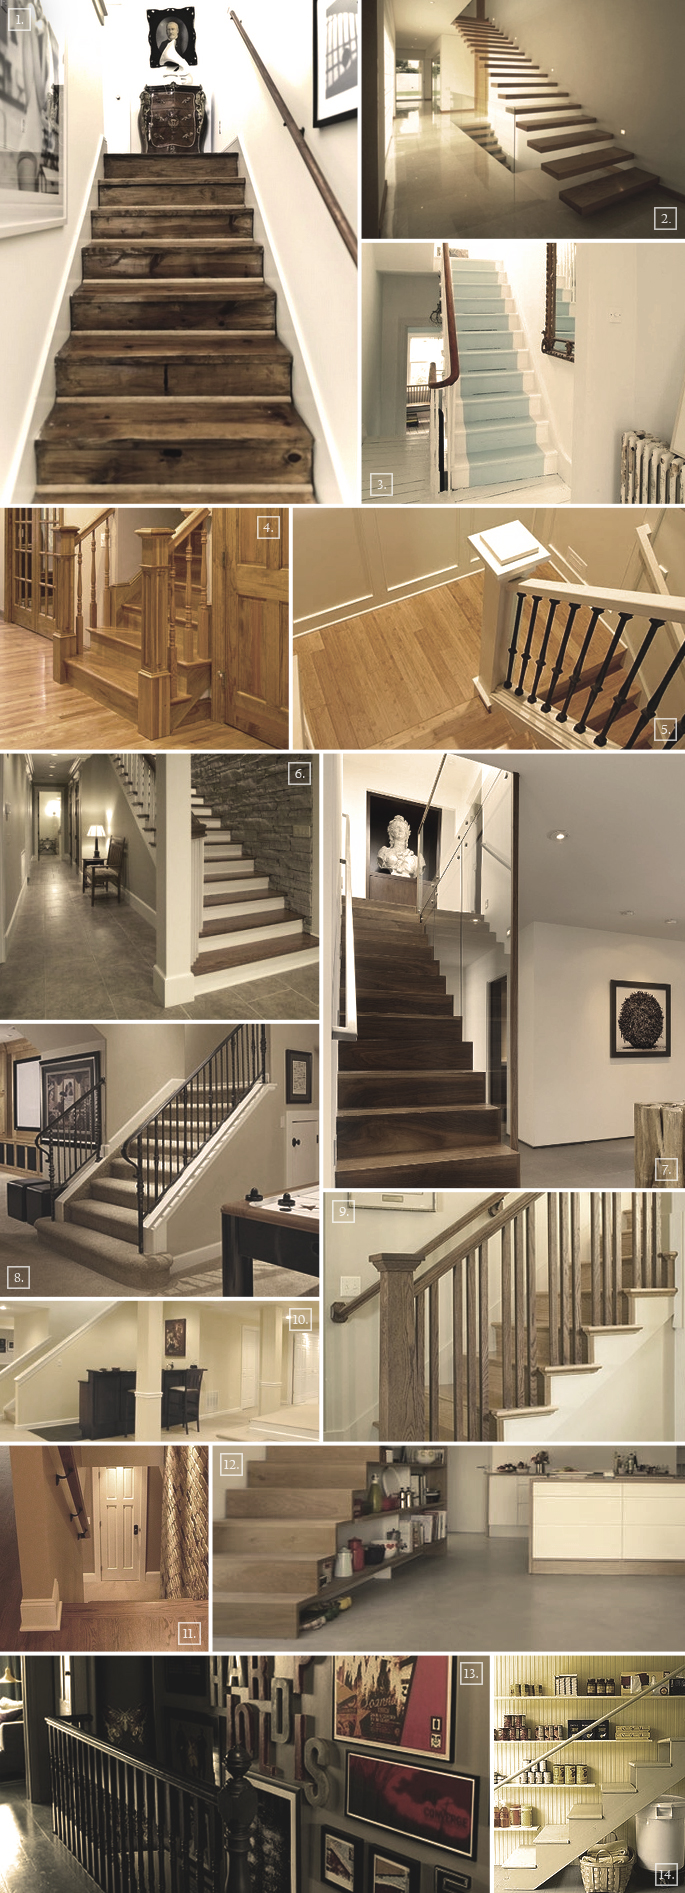 Lighting Basement Washroom Stairs: Ideas For A Basement Staircase: Designs, Railings, Storage